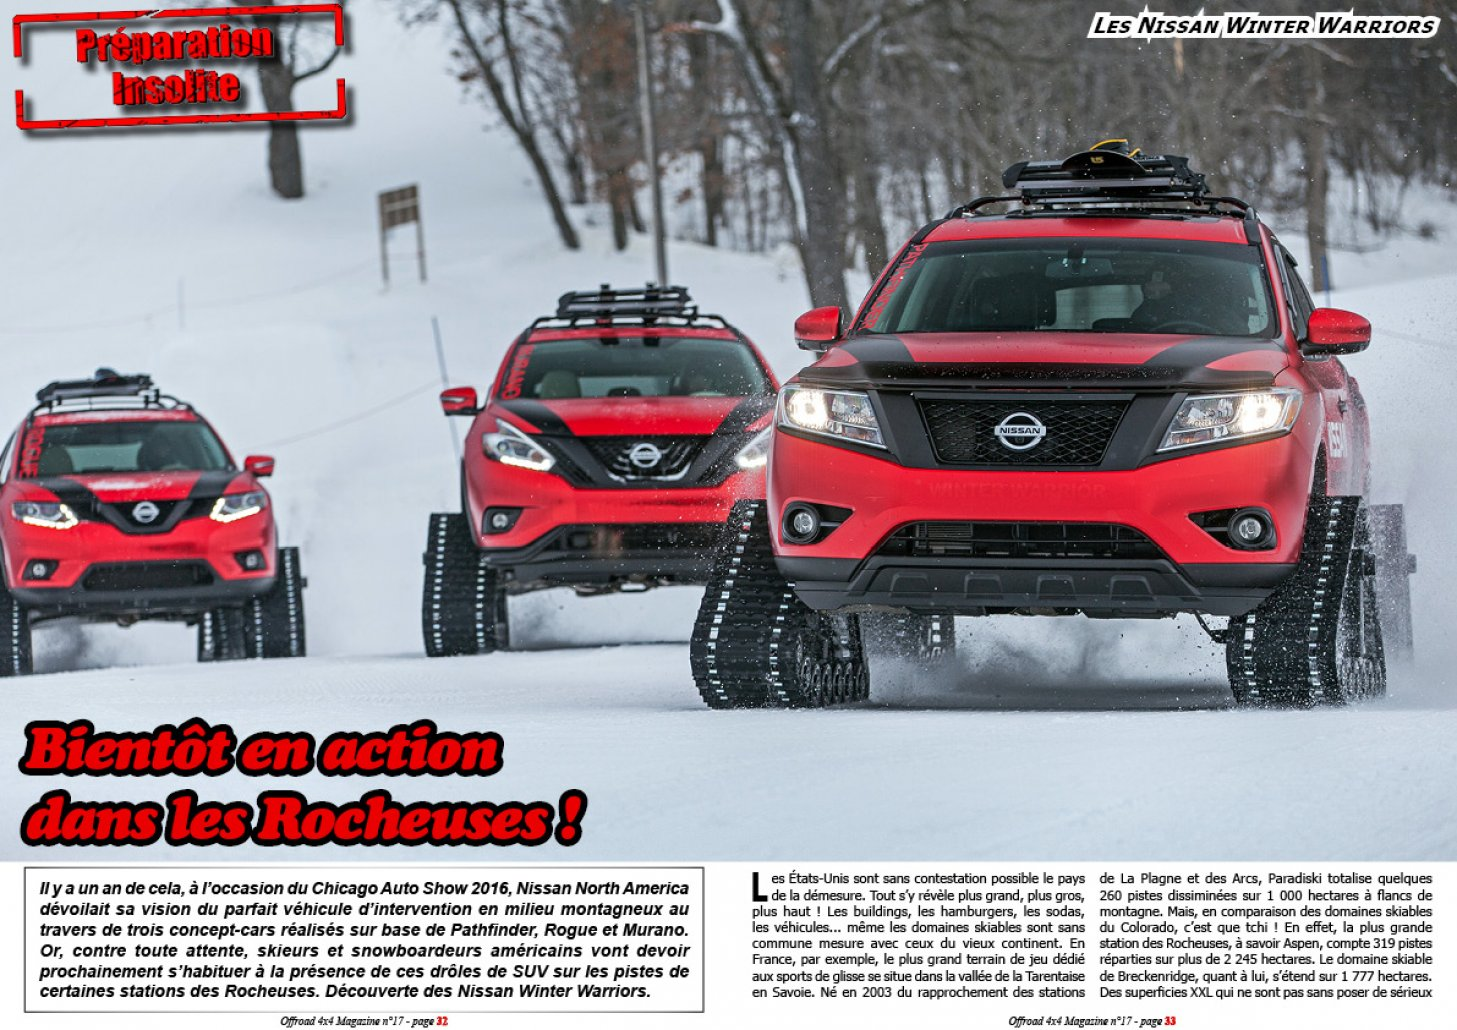 Les Nissan Winter Warriors